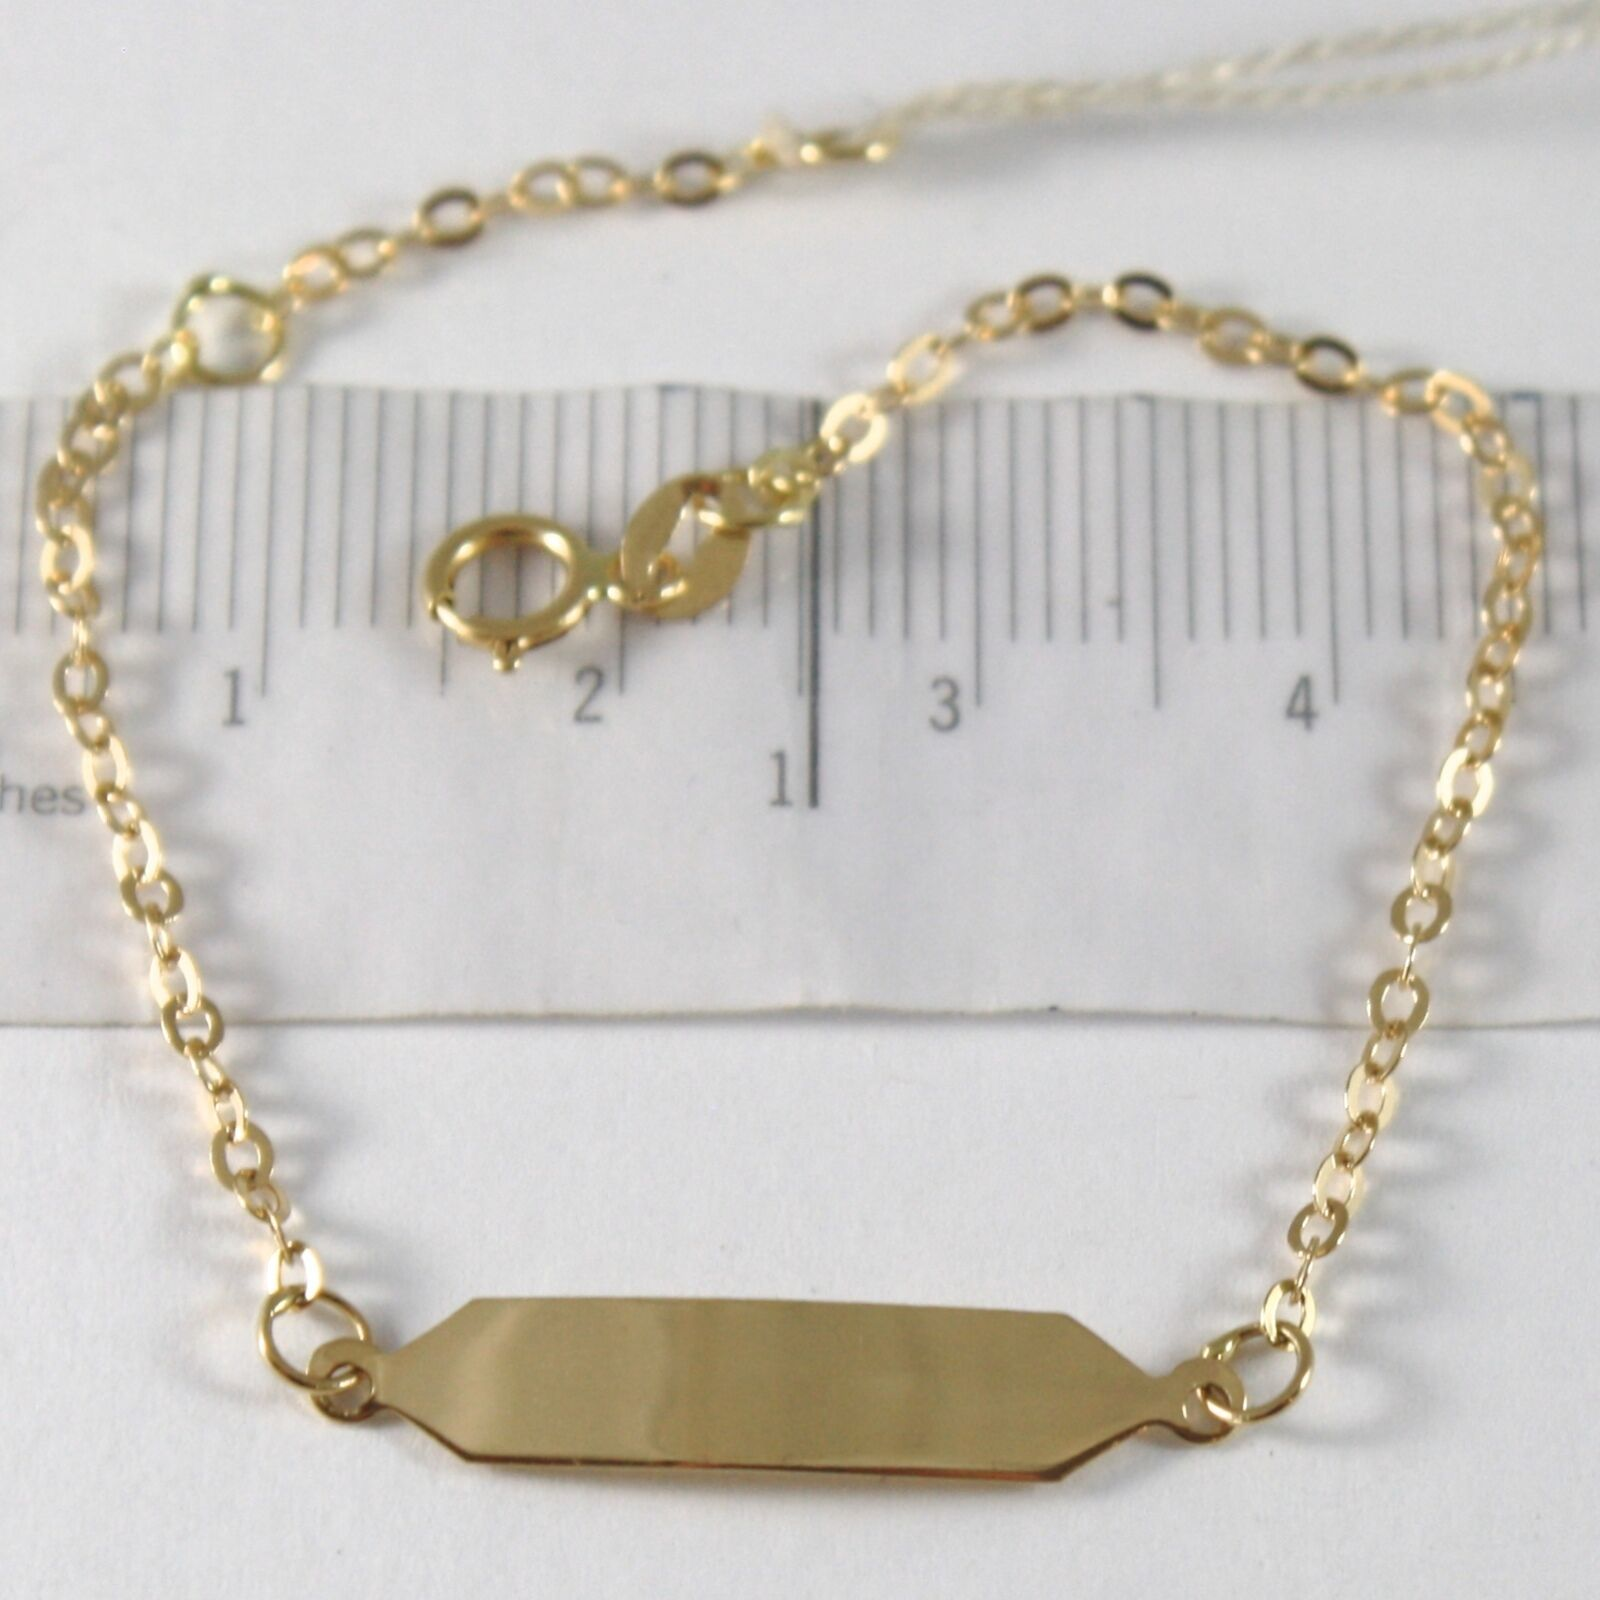 Bracelet Yellow Gold 750 18K, Circles Rolo 'And Plate For Incision, 15 CM